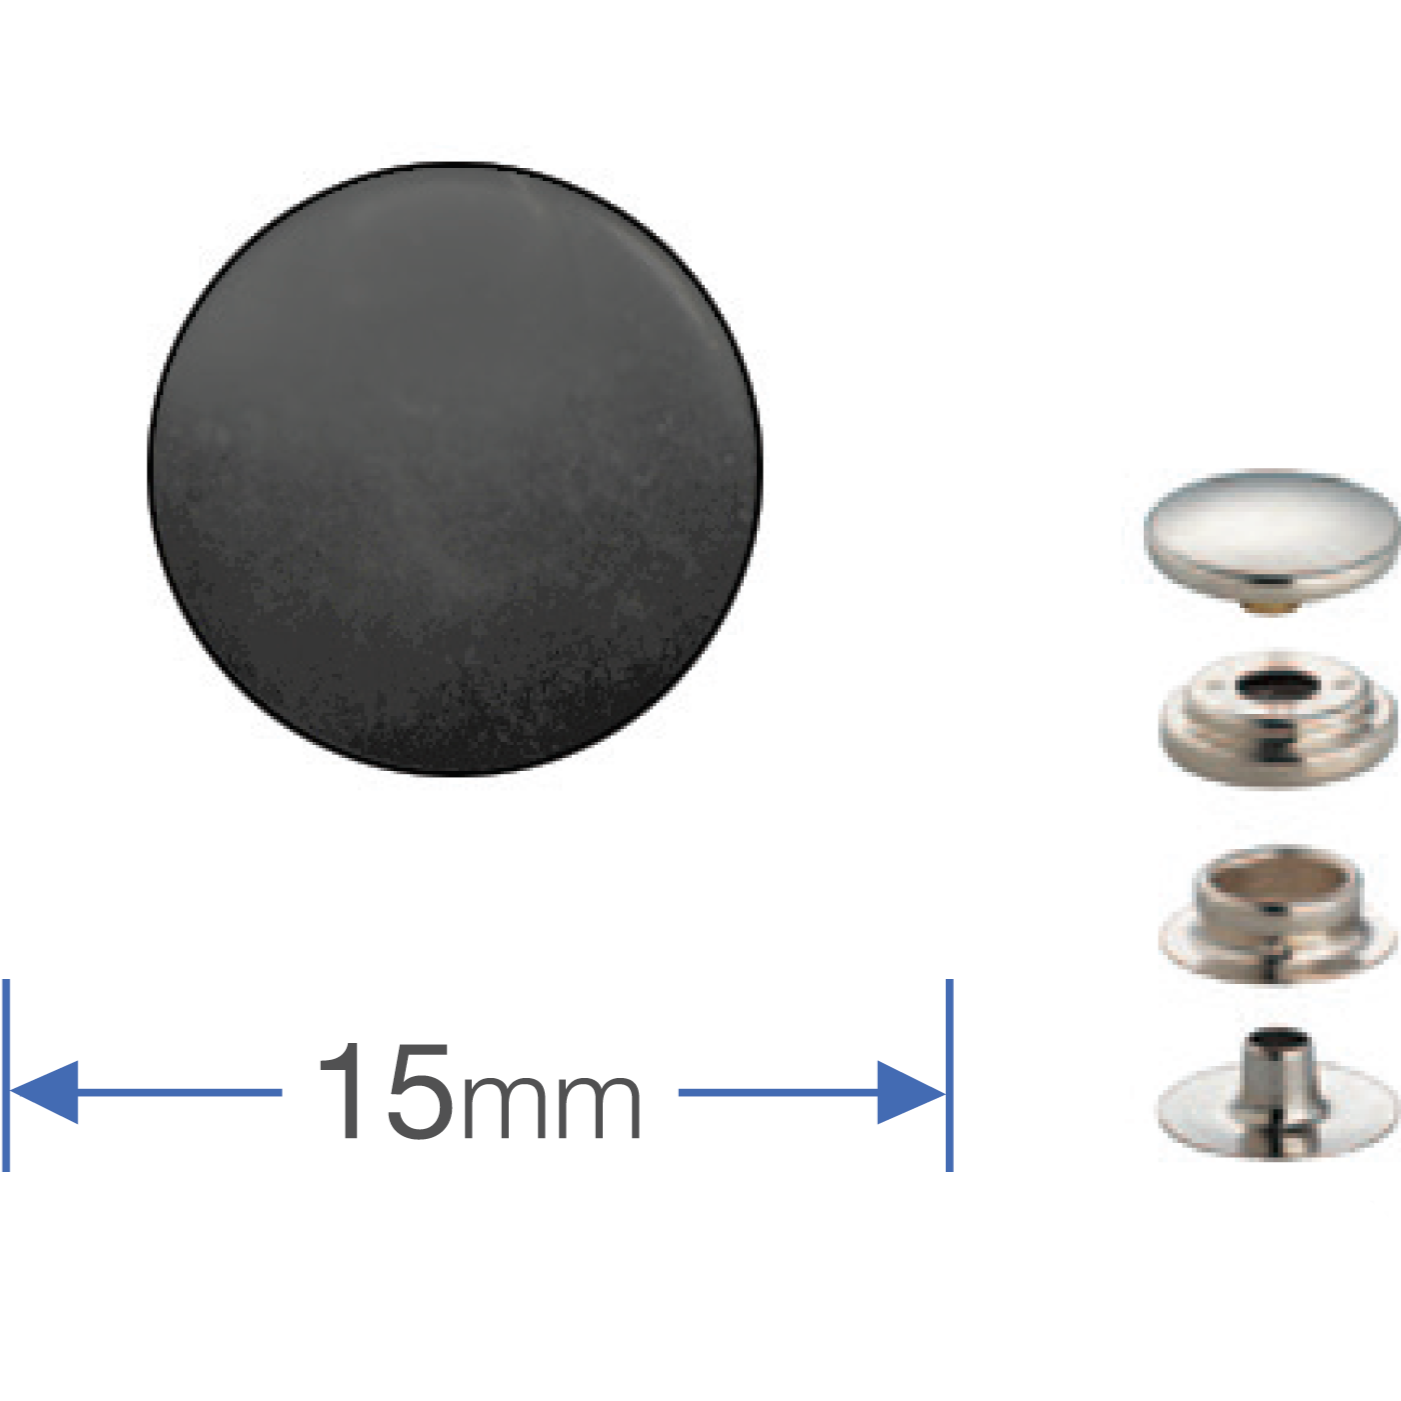 Press Studs (Non-Sew) - Gun Black 15mm Heavyweight: PACK OF 100